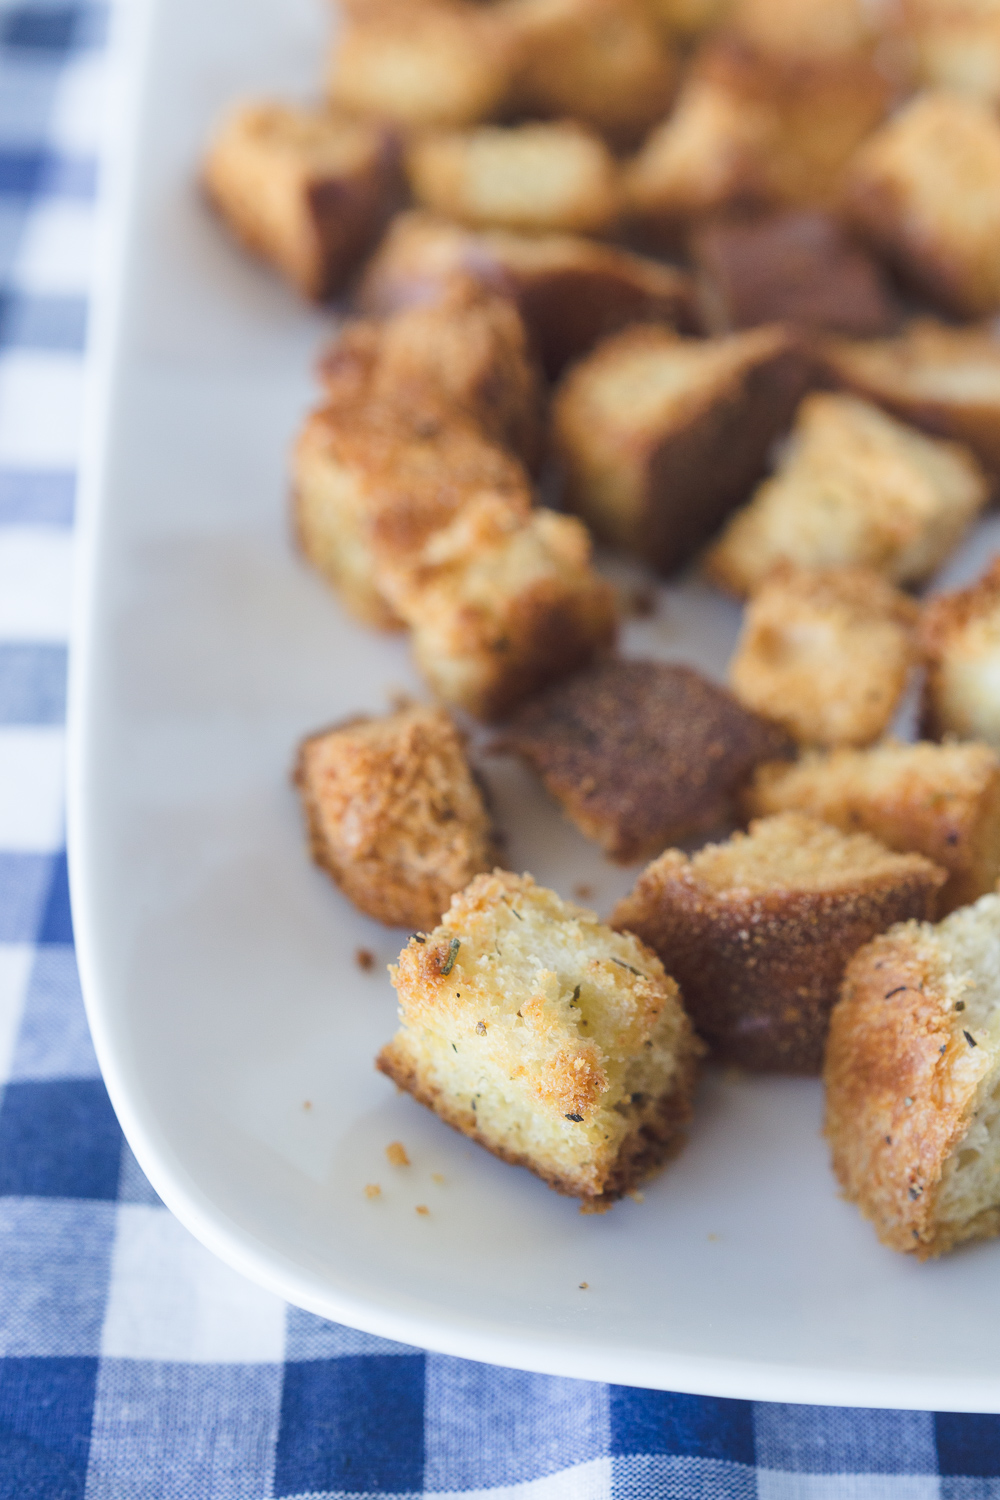 Homemade Croutons: a delicious and simple recipe for croutons that are perfect for soups, salads, and more!